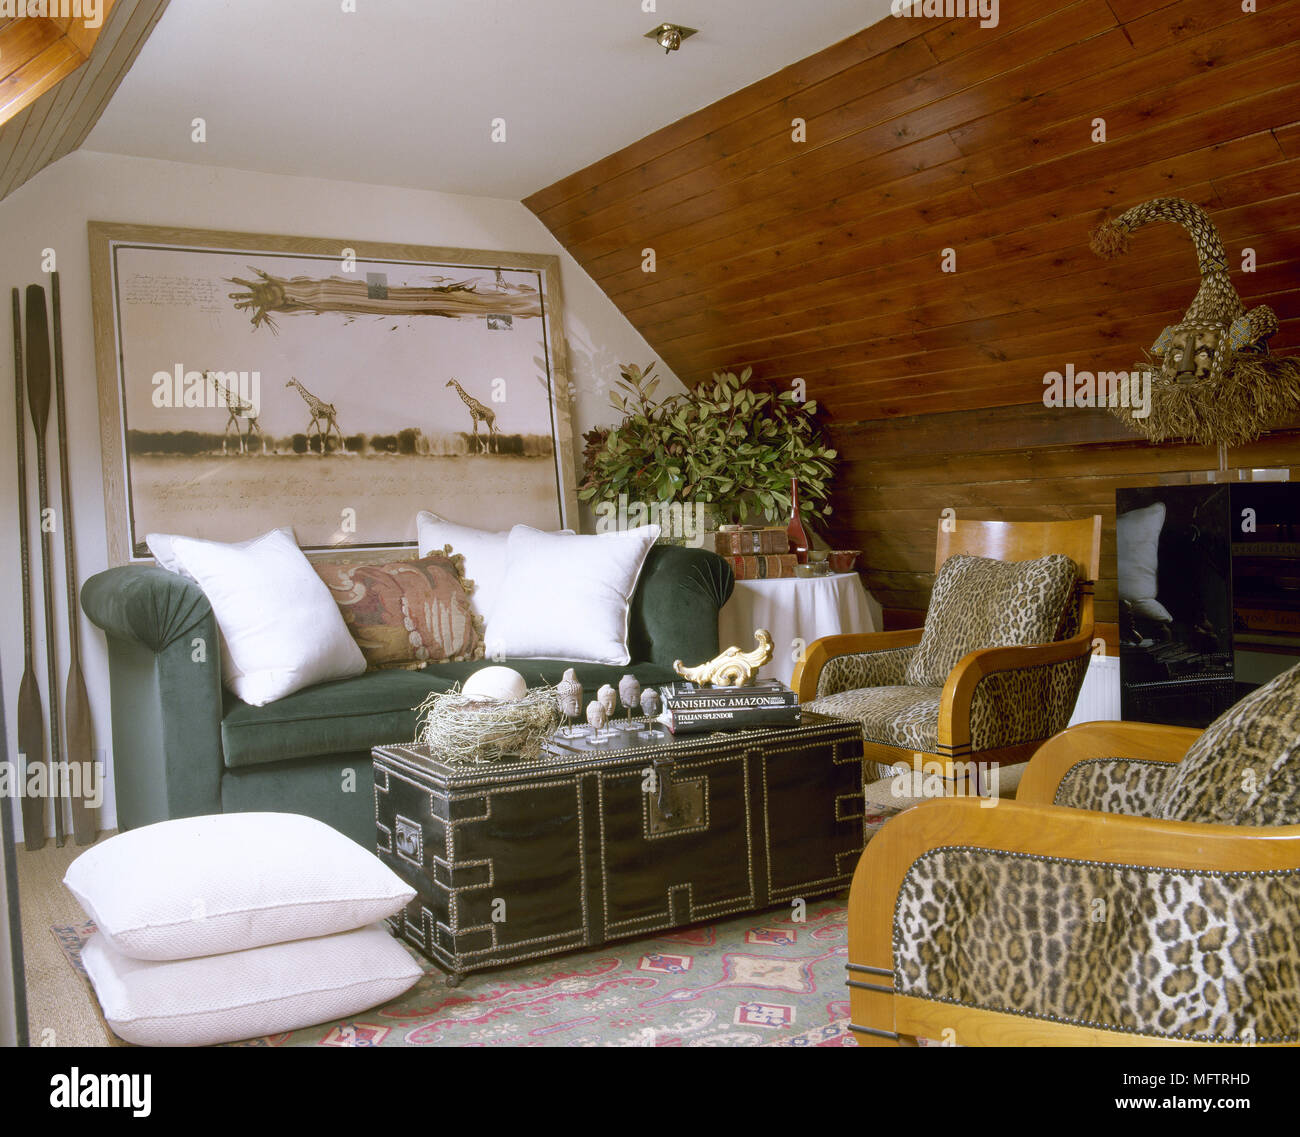 Exotic Sitting Room With A Sloping, Wood Panelled Ceiling, Sofa, Coffee  Table, And Animal Print Chairs.